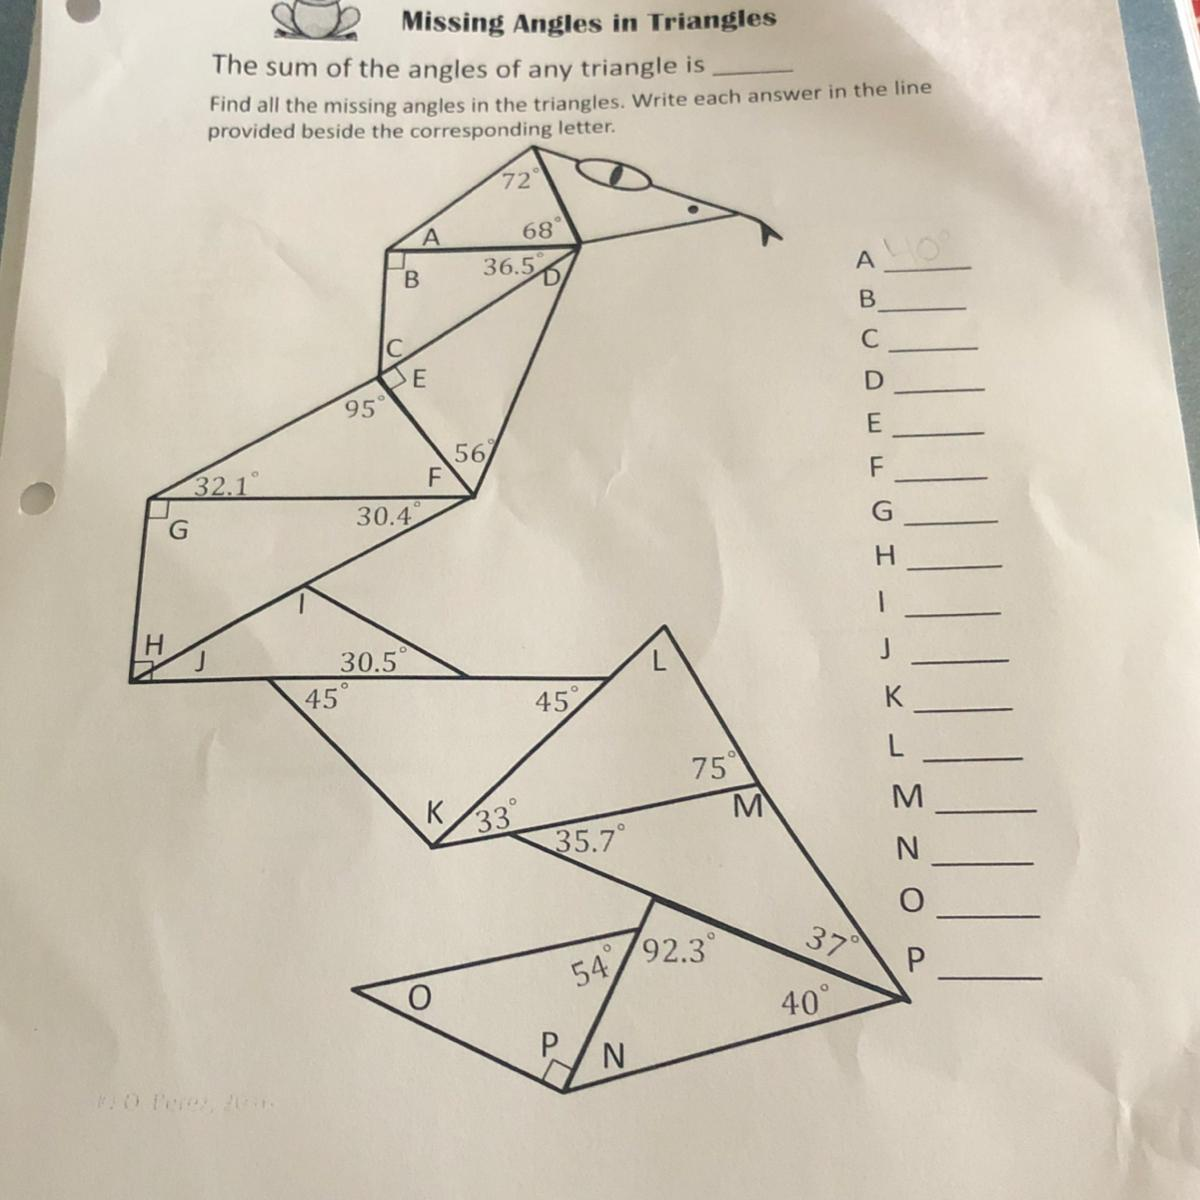 Missing Angles In Triangles Worksheet Answers